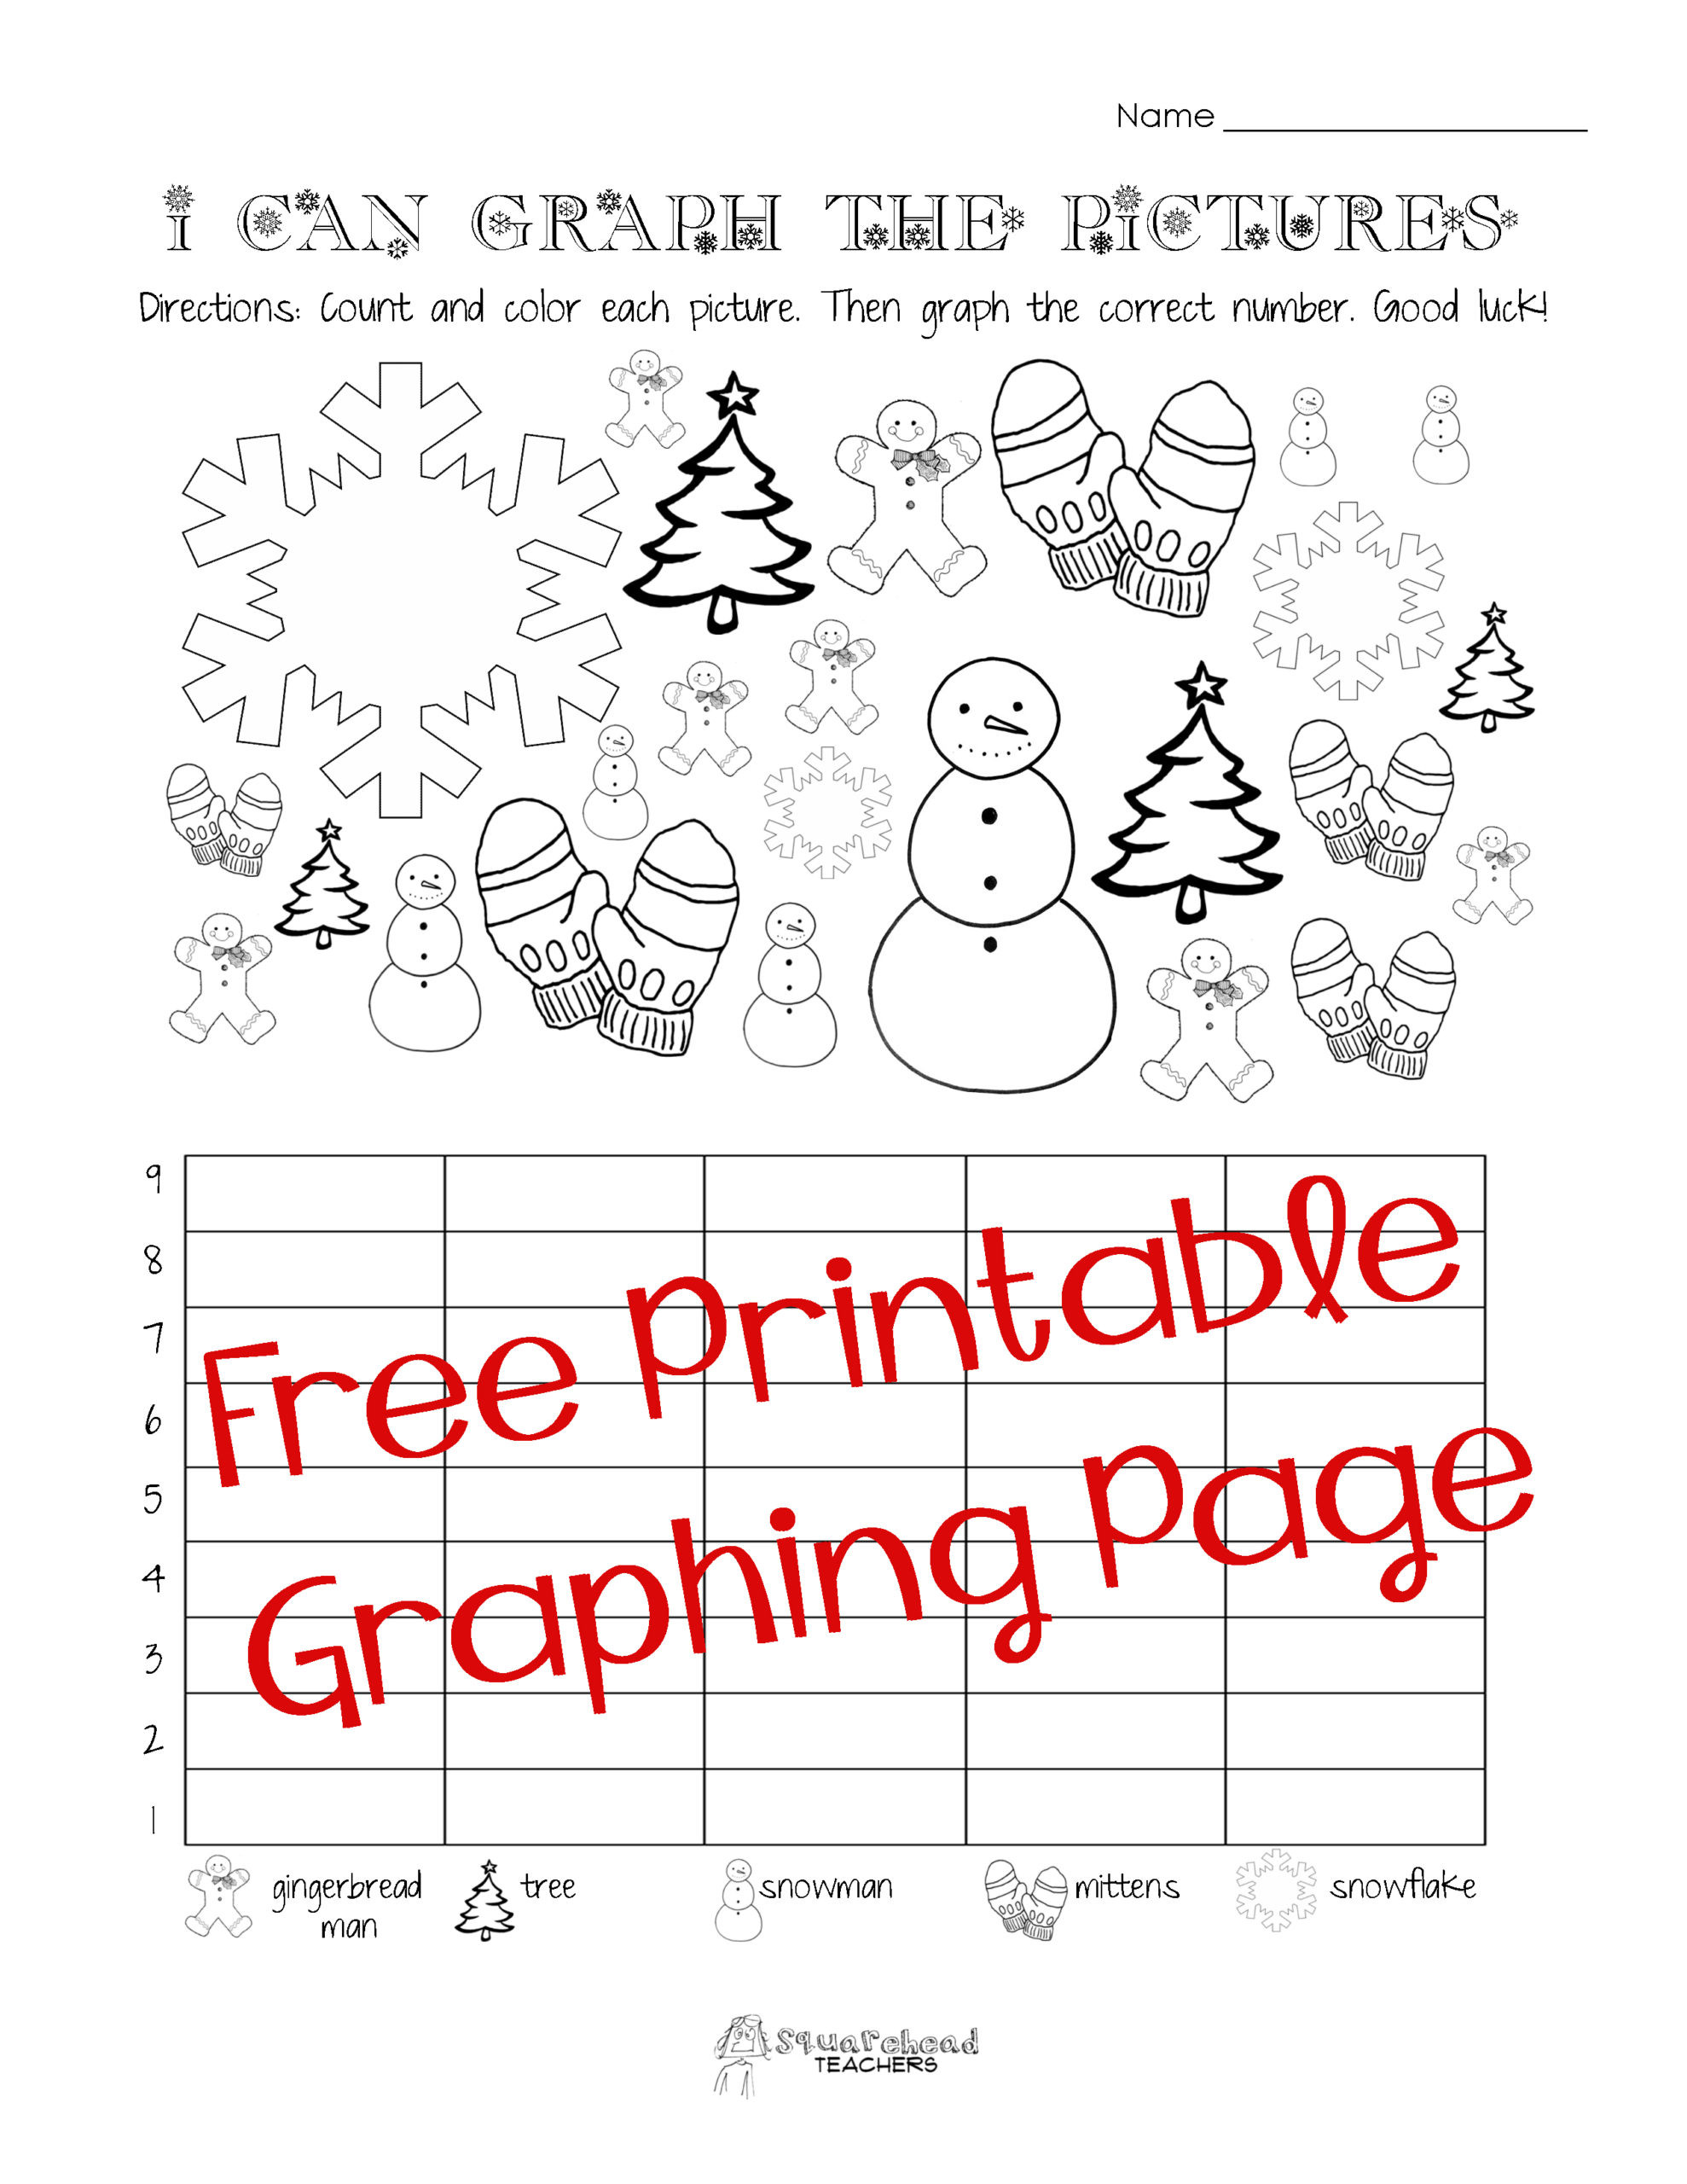 Free Printable Keyboarding Worksheets Worksheet Create Your Own Cursive Handwriting Worksheets